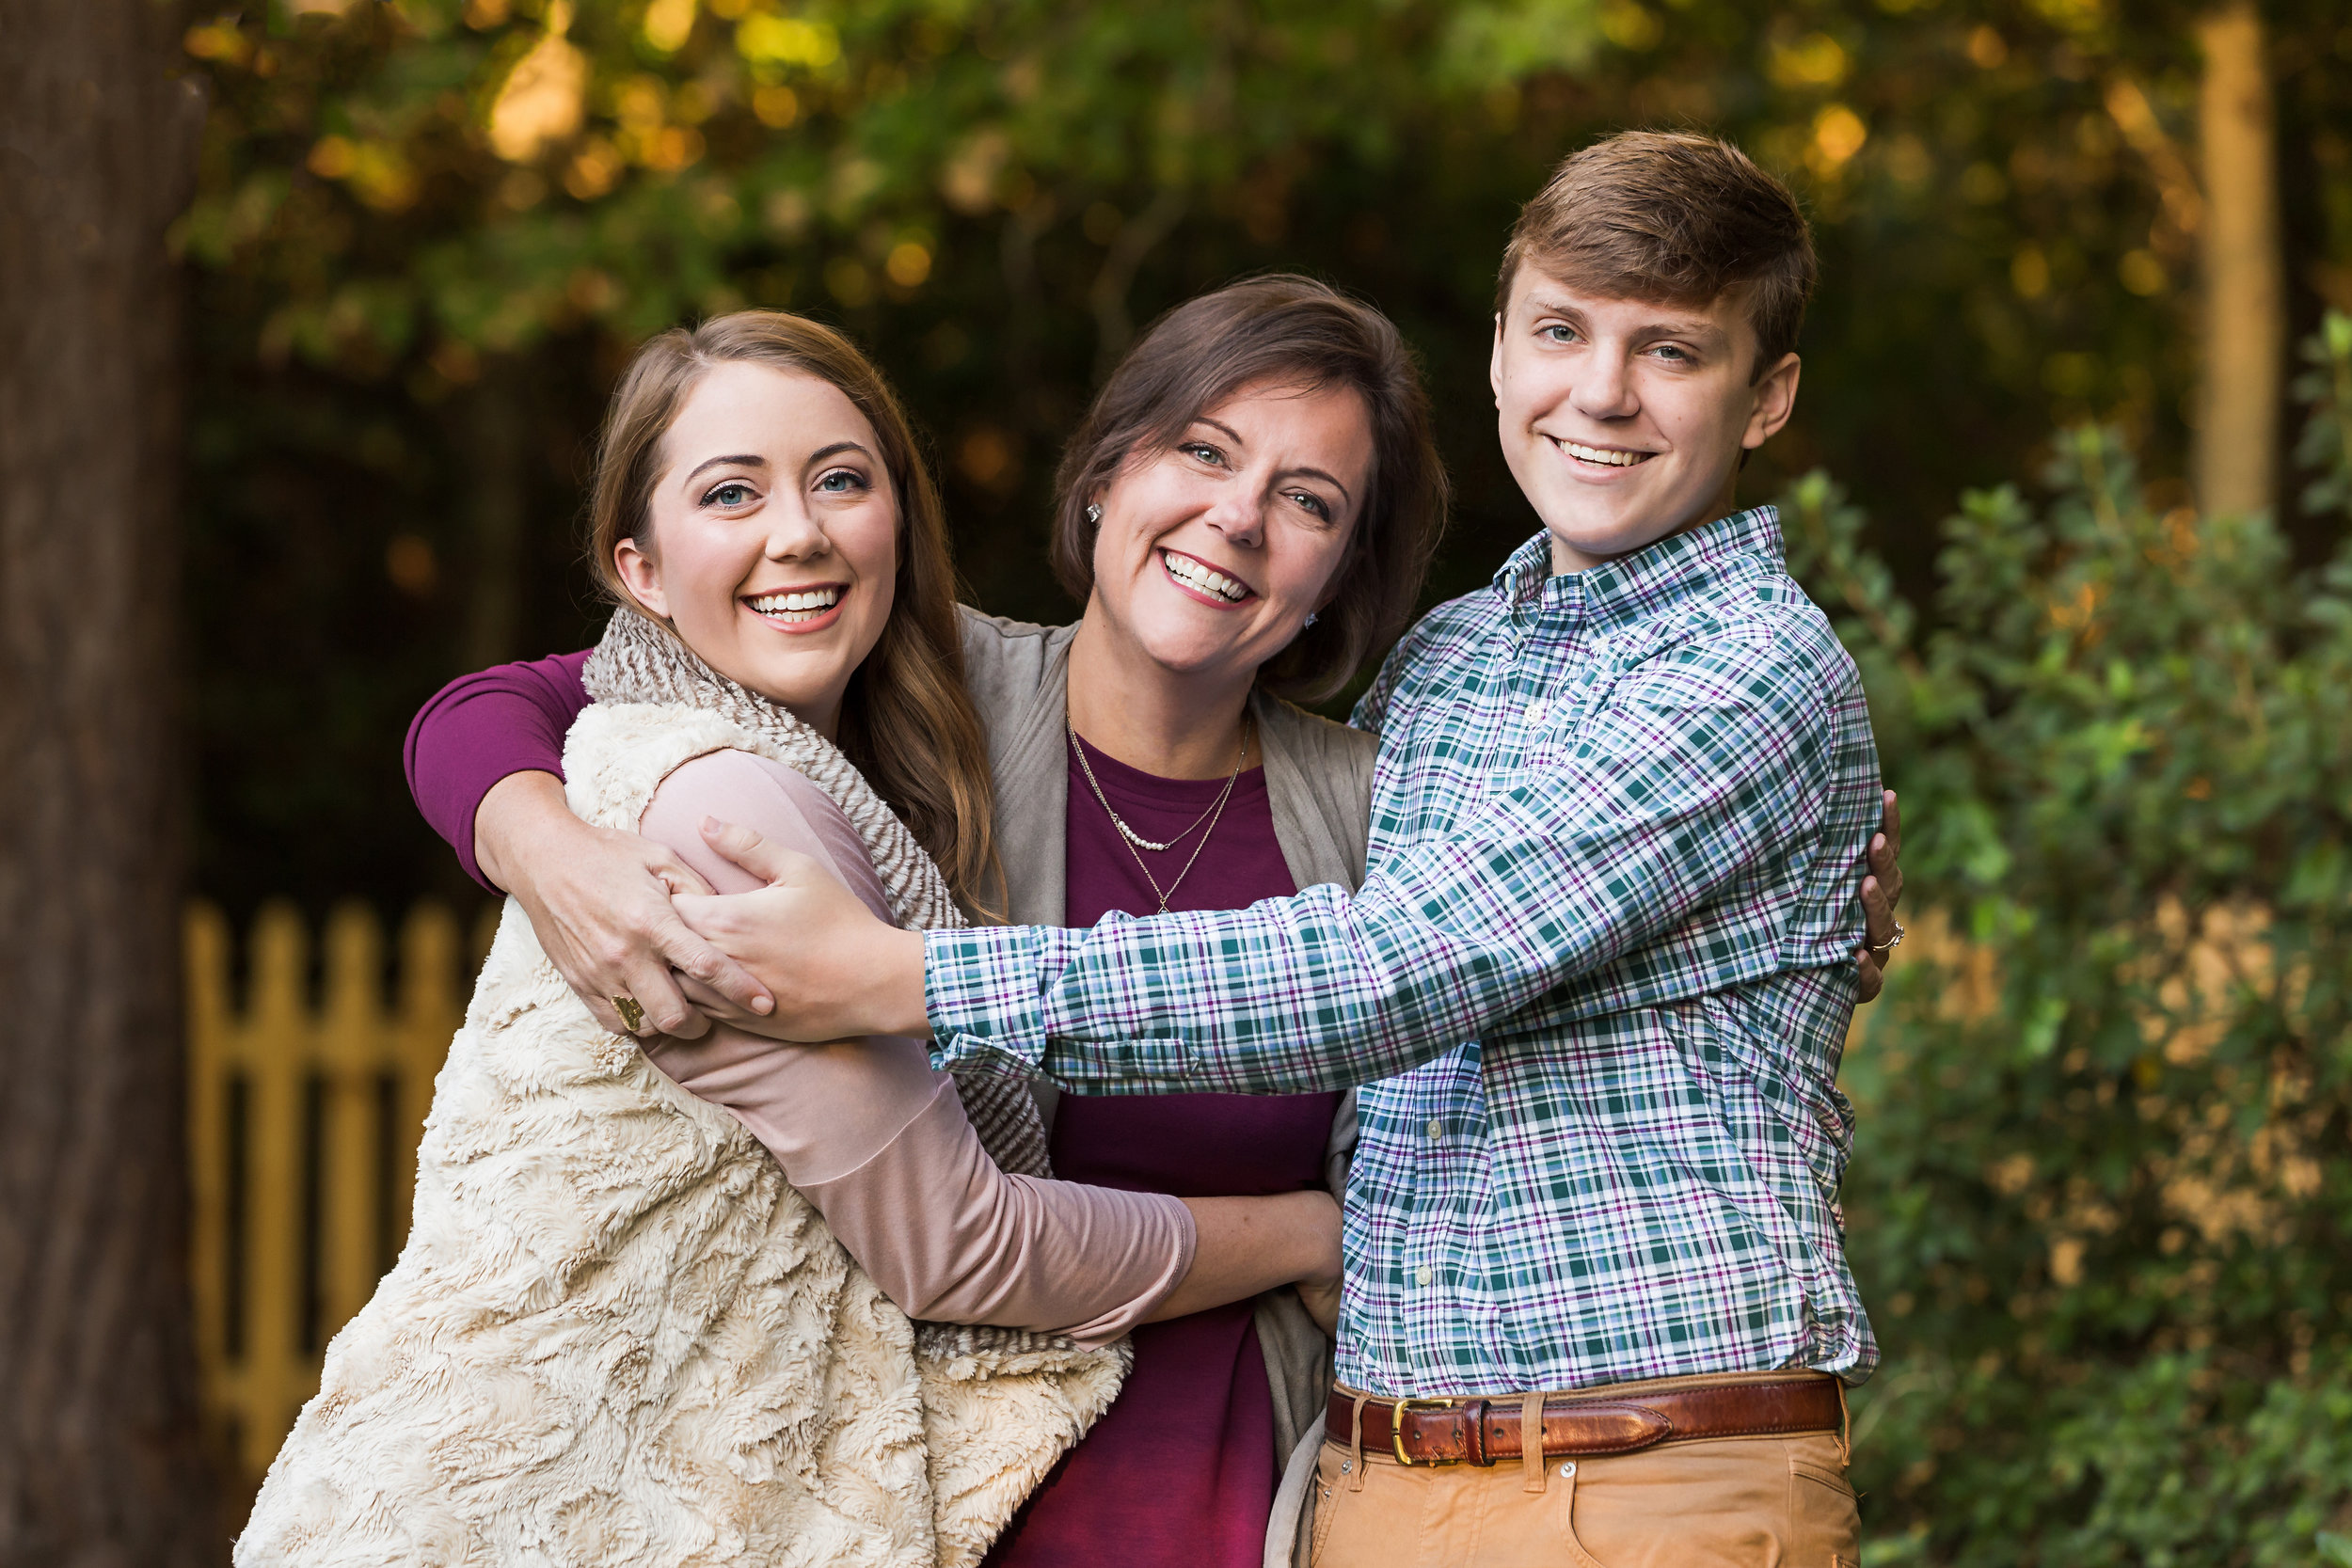 Portrait Sessions - Children, Engagement, Maternity, Family